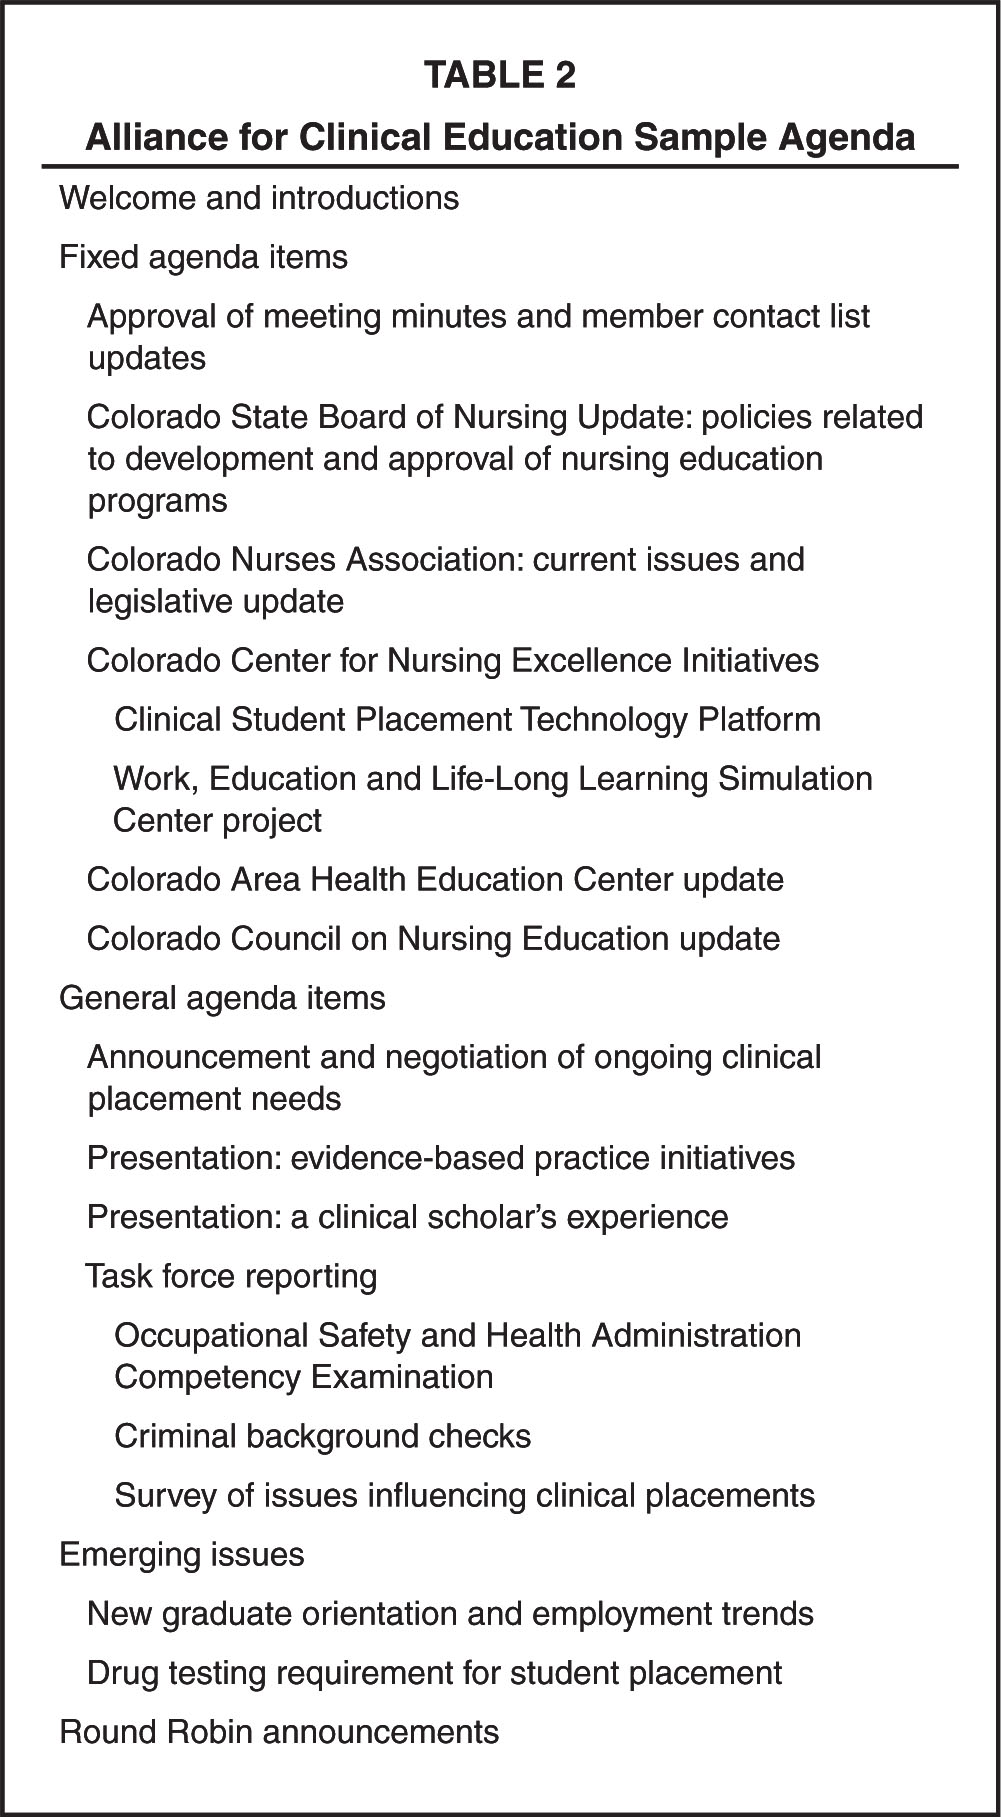 Alliance for Clinical Education Sample Agenda